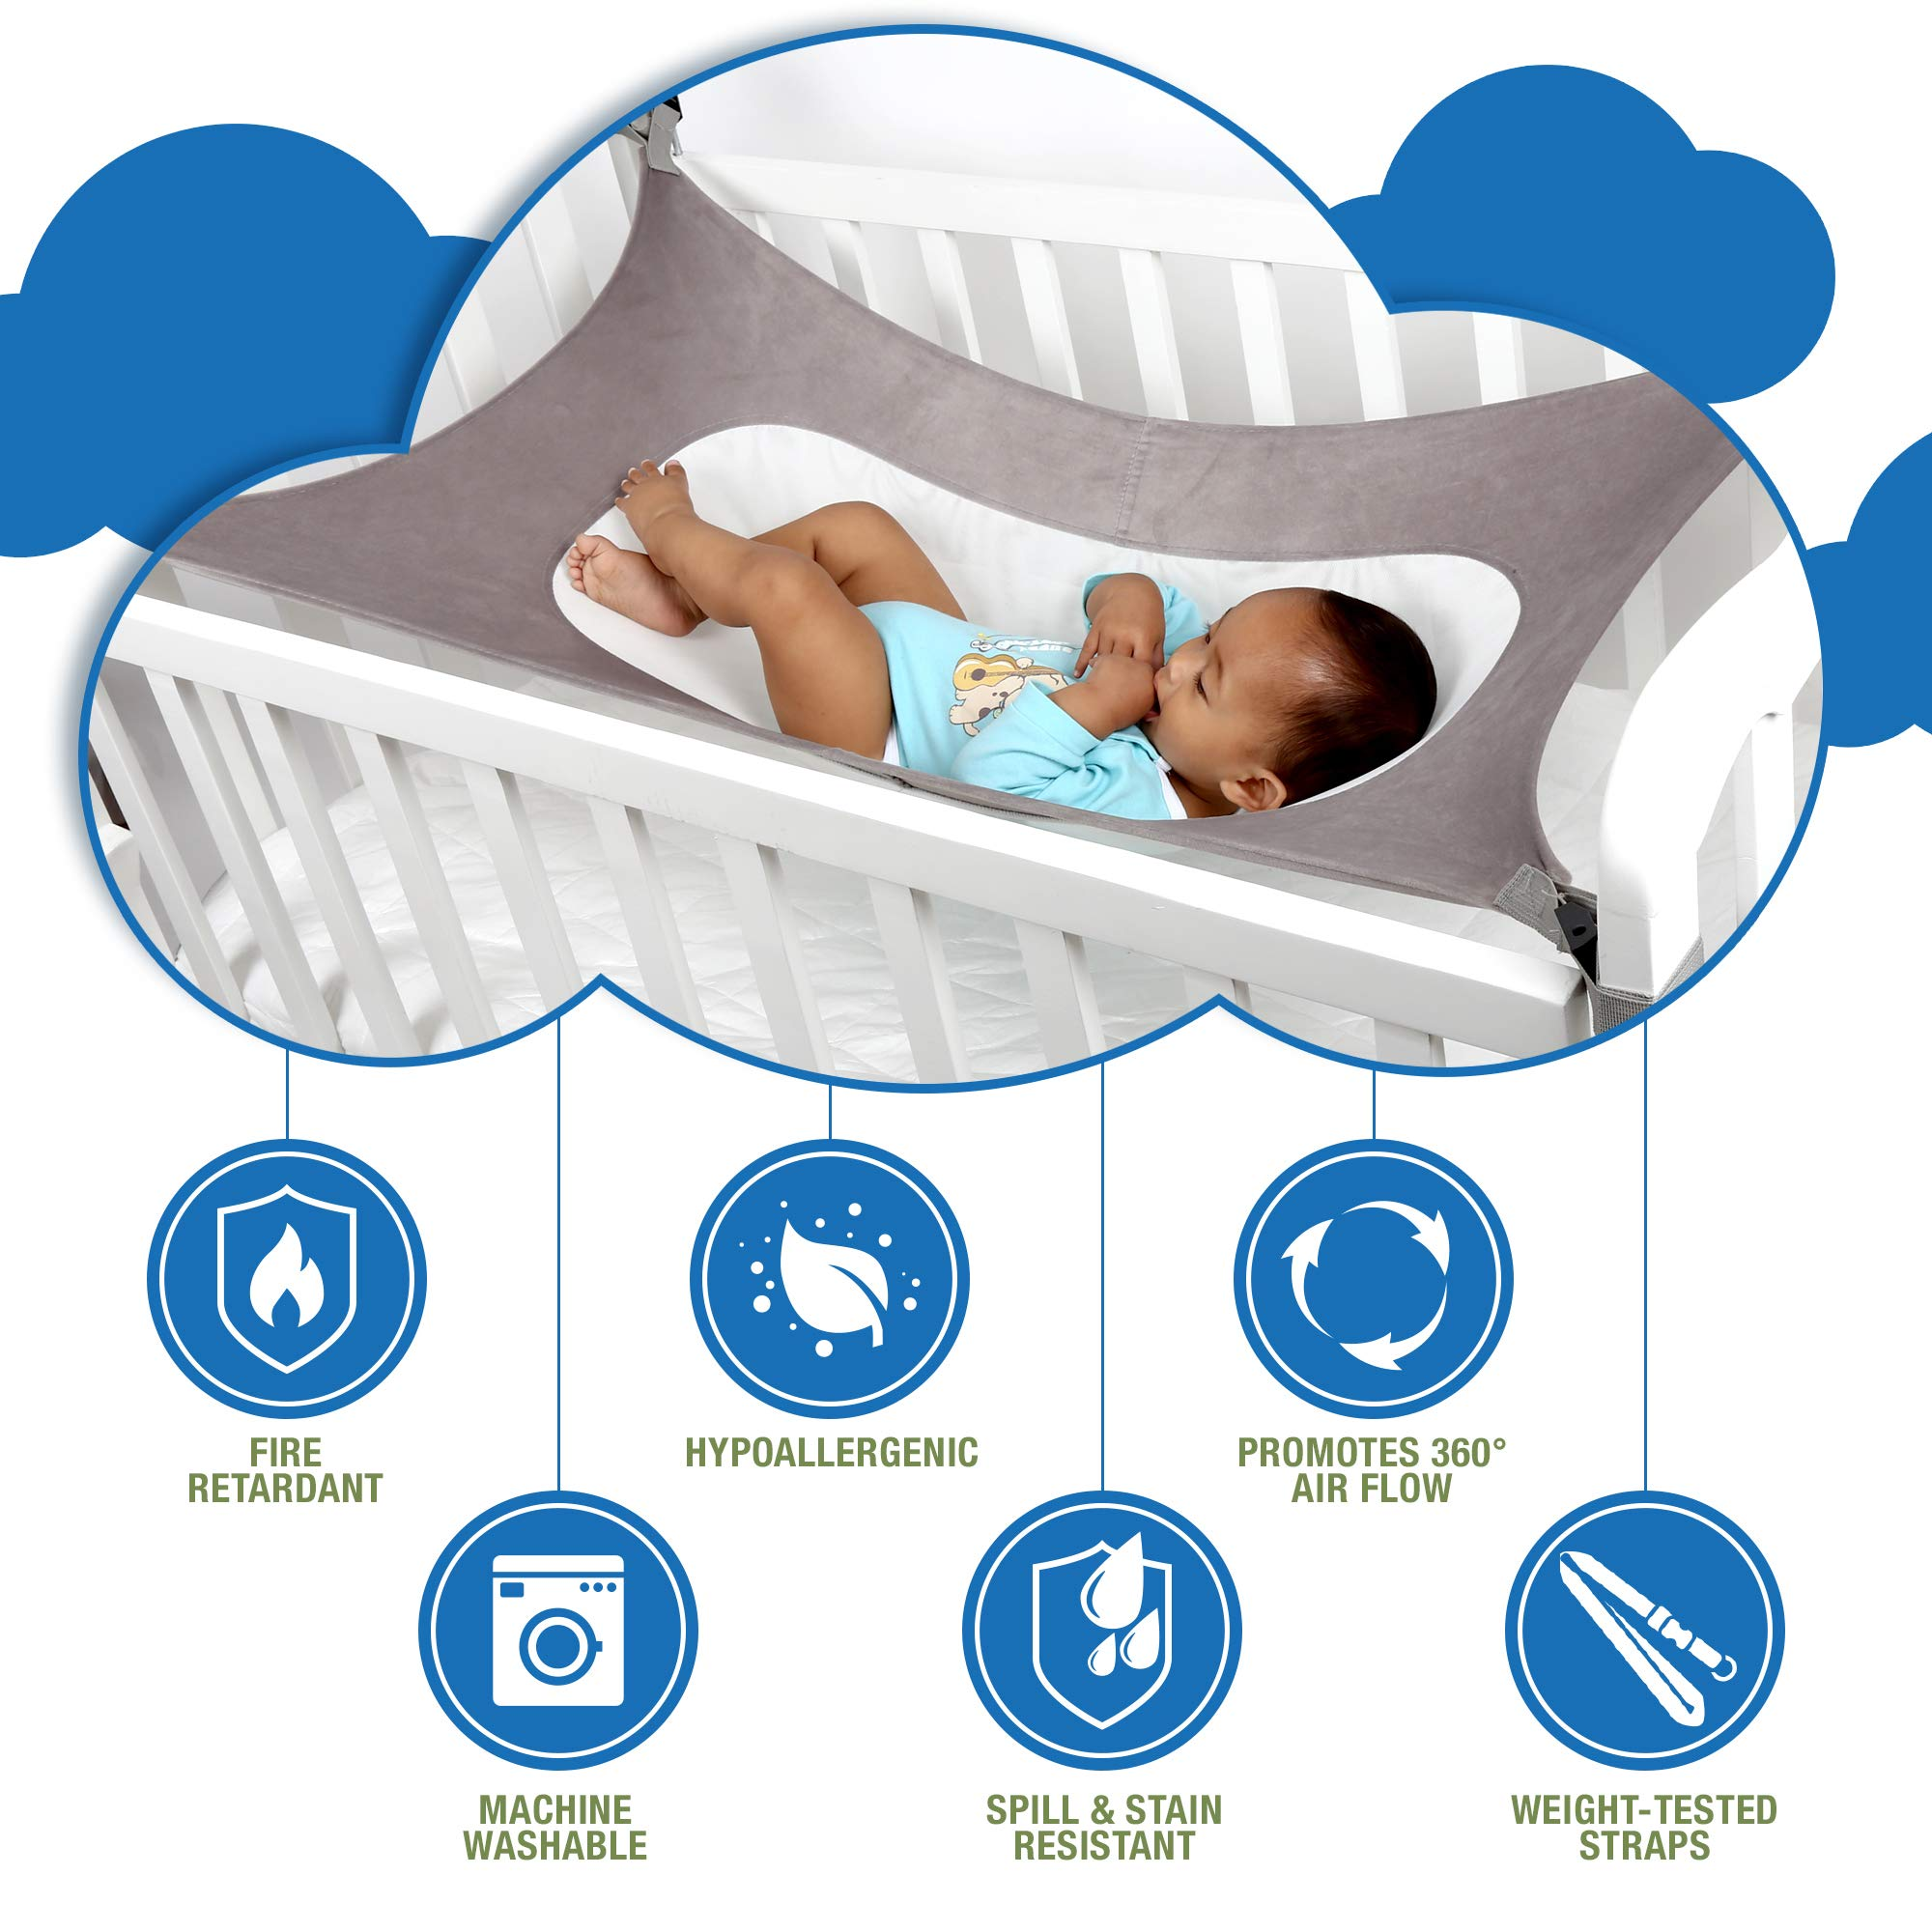 Baby Crib Hammock by Easy Gorilla - Newborn Bed Sleeping Essentials for Boys and Girls - Breathable and Portable - Infant Sleep Comfort Gifts for Indoor Cot - Cradle - Safety Mesh Nursery Nap Hammocks by EasyGorilla (Image #6)